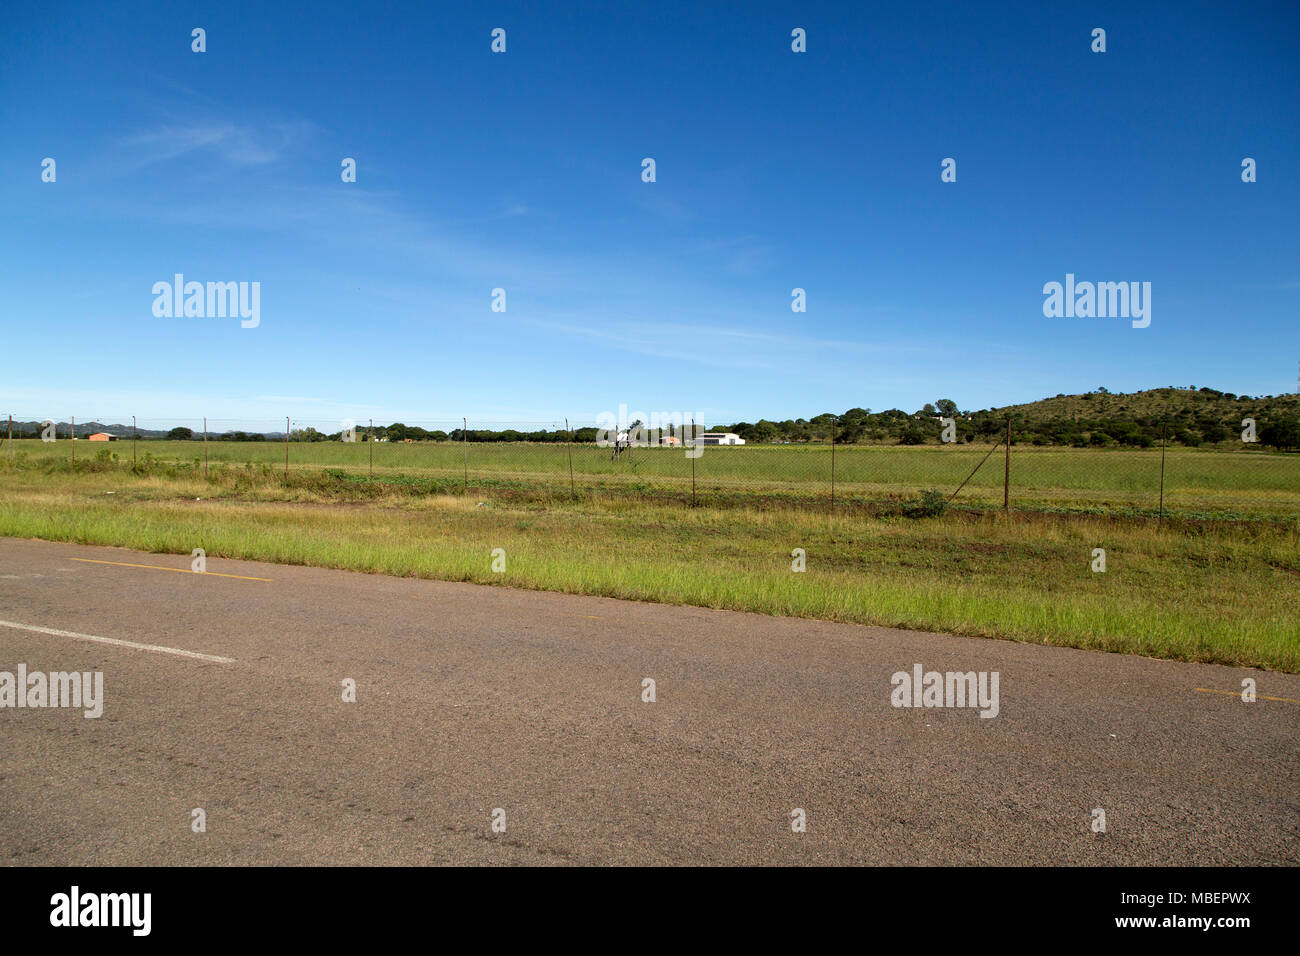 Land that was once owned by Cecil John Rhodes near Matobo National Park in Zimbabwe. Rhodes body was carried to his burial place, inside the park, fro - Stock Image